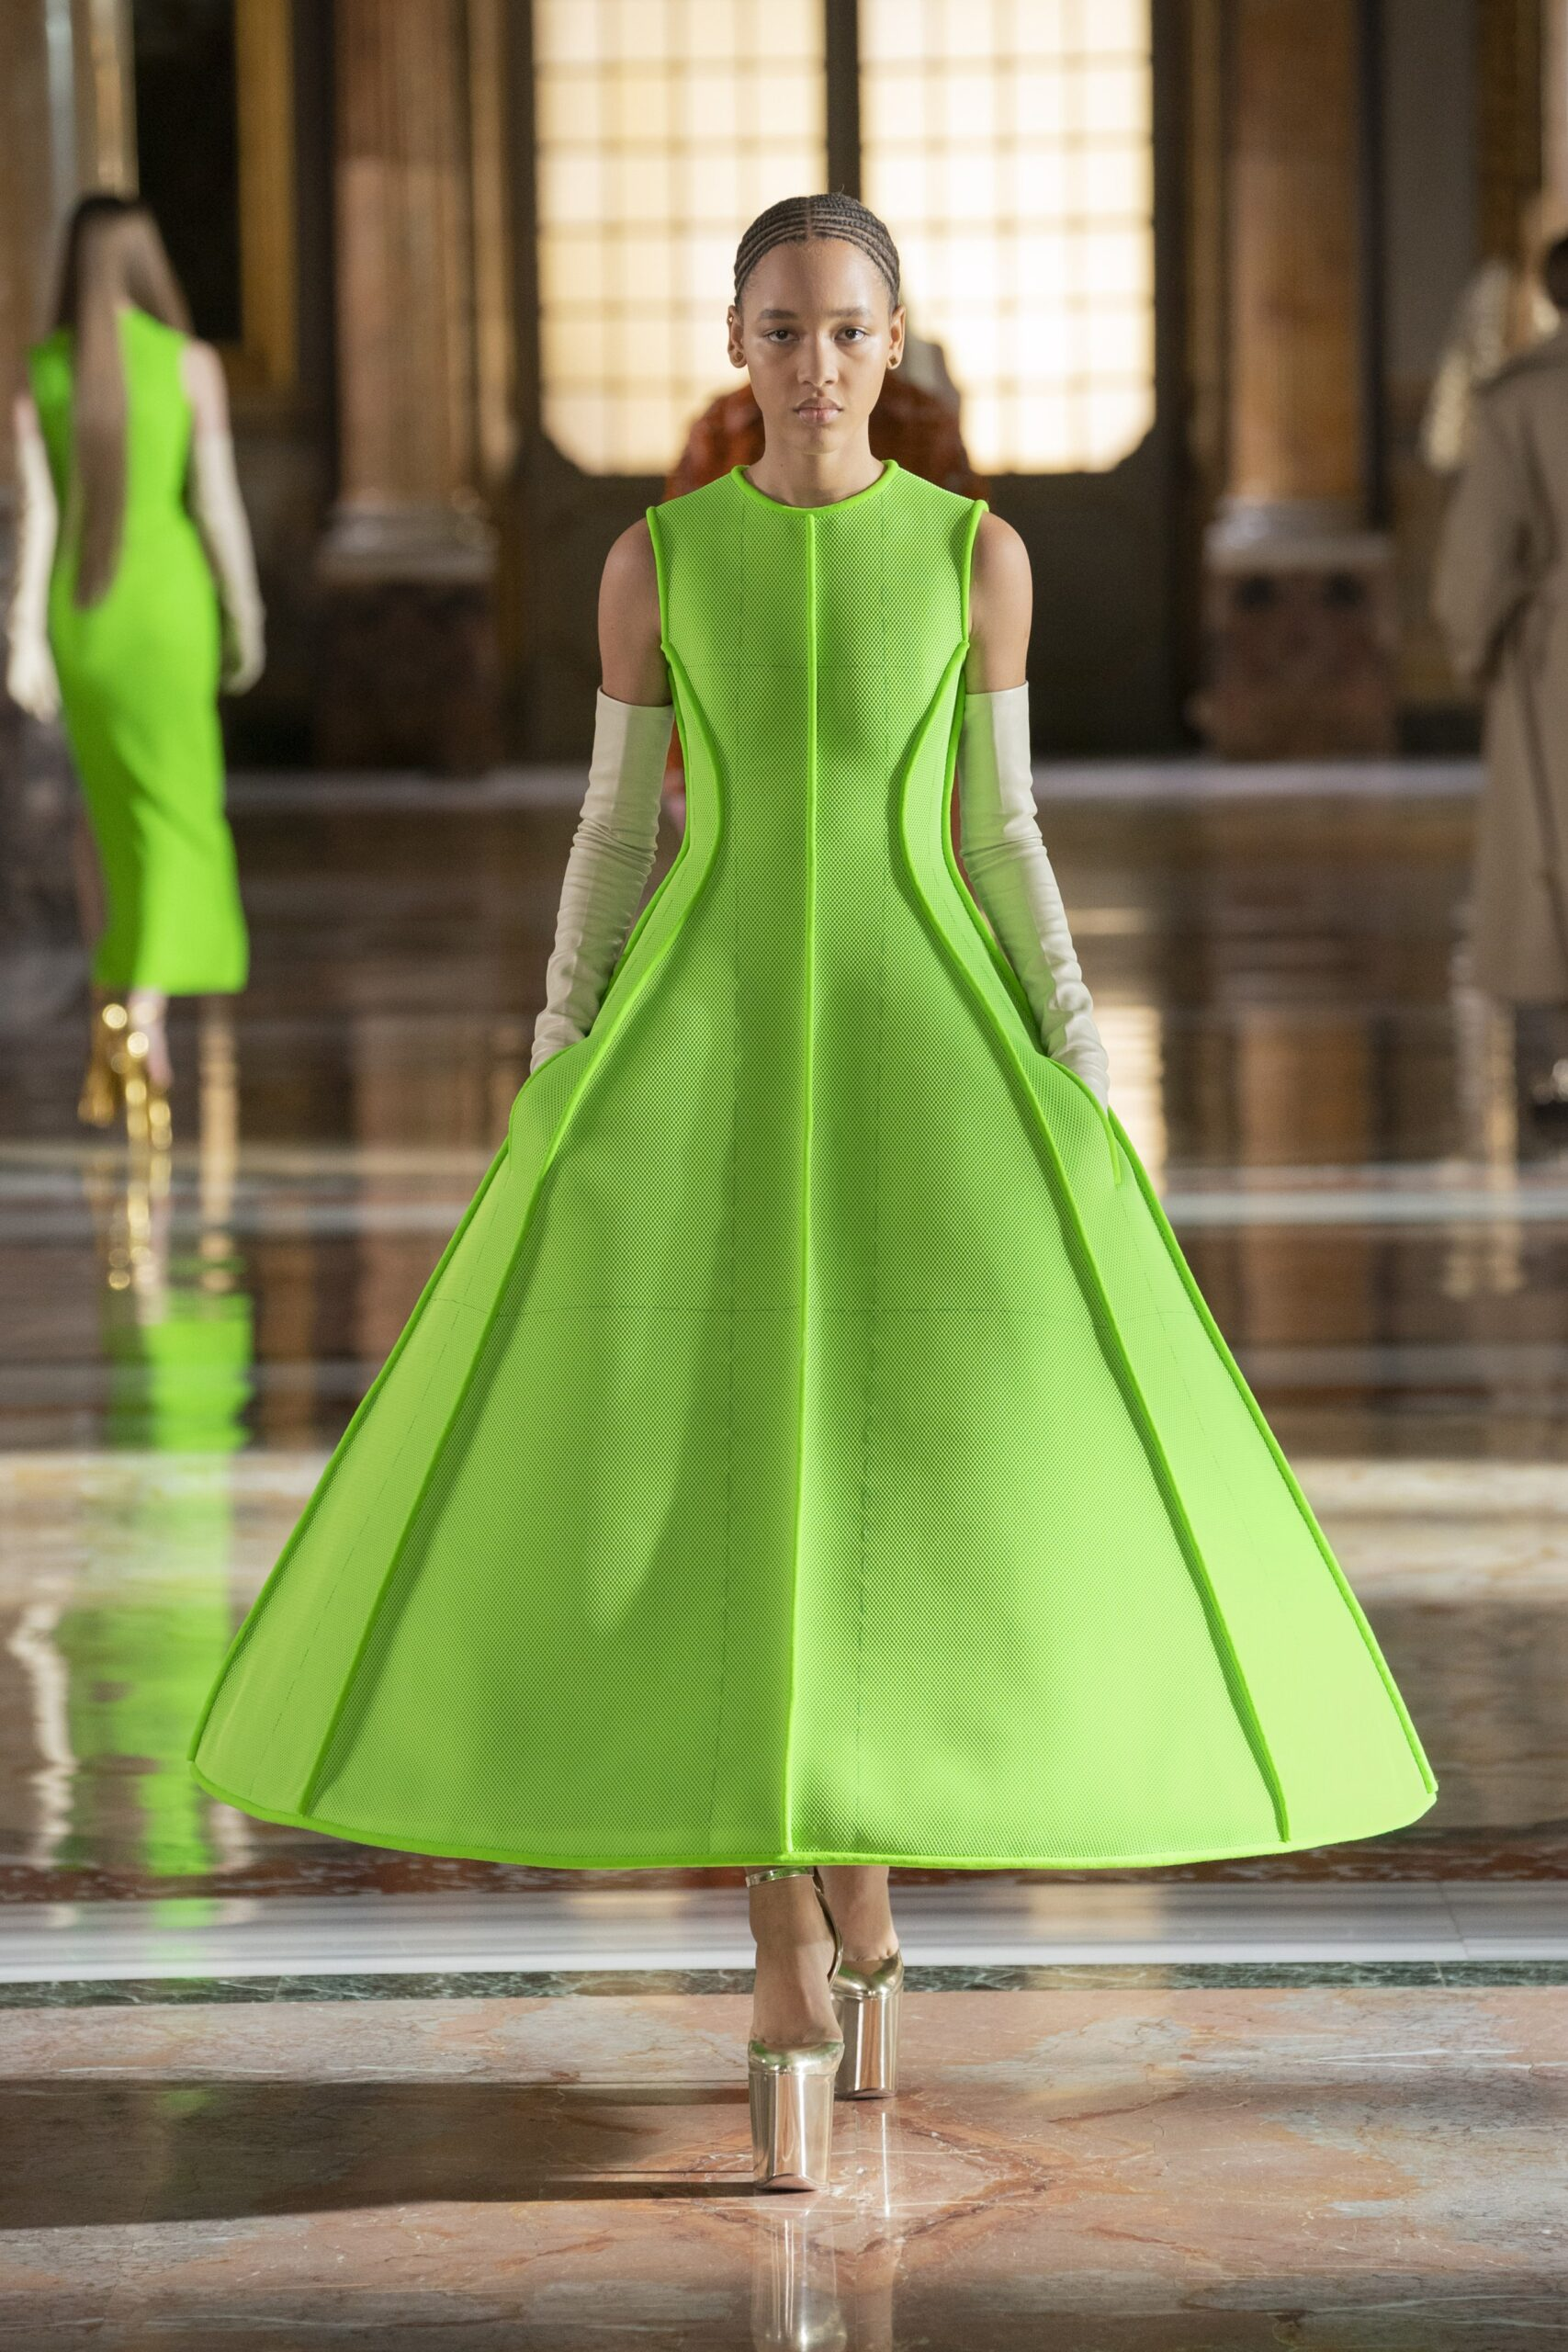 00030 Valentino Couture Spring 21 1